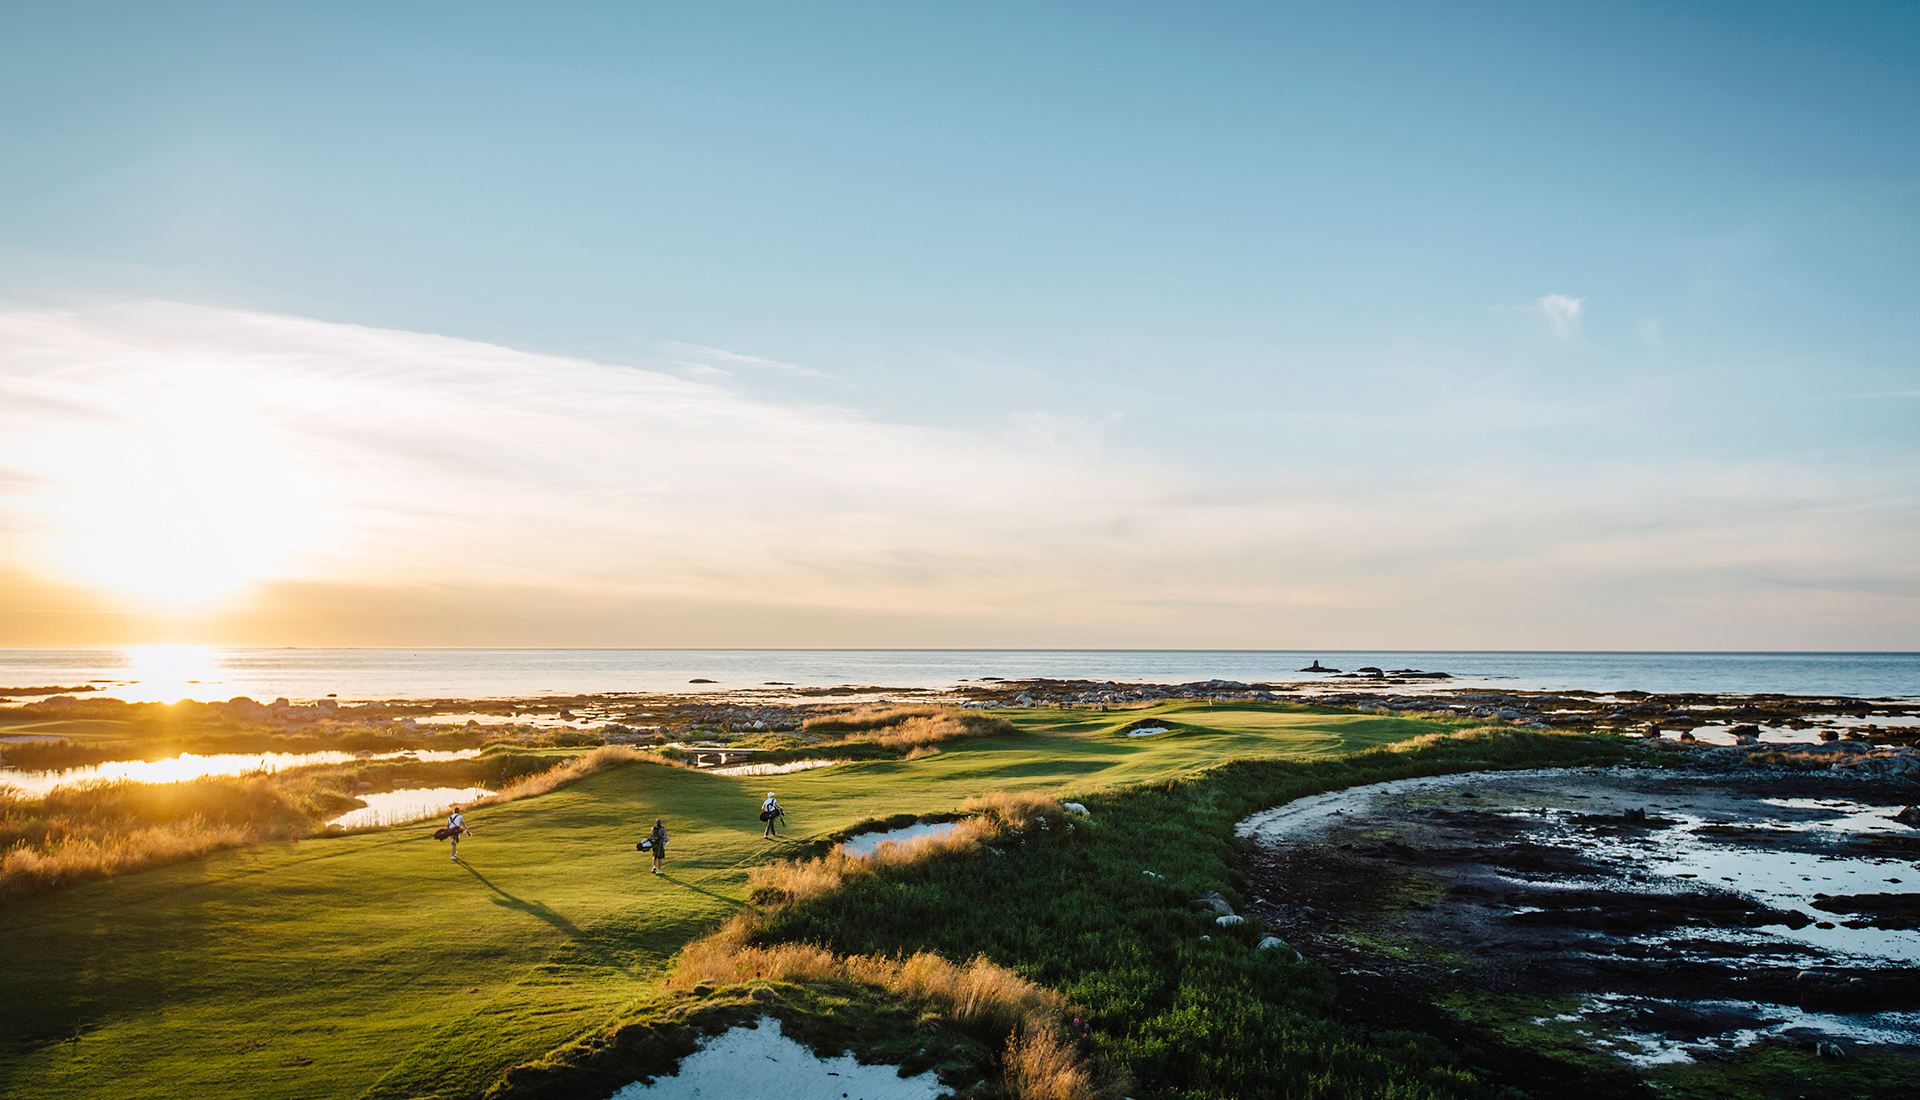 #GolfNonStopLofoten – Play golf under the Midnight Sun!